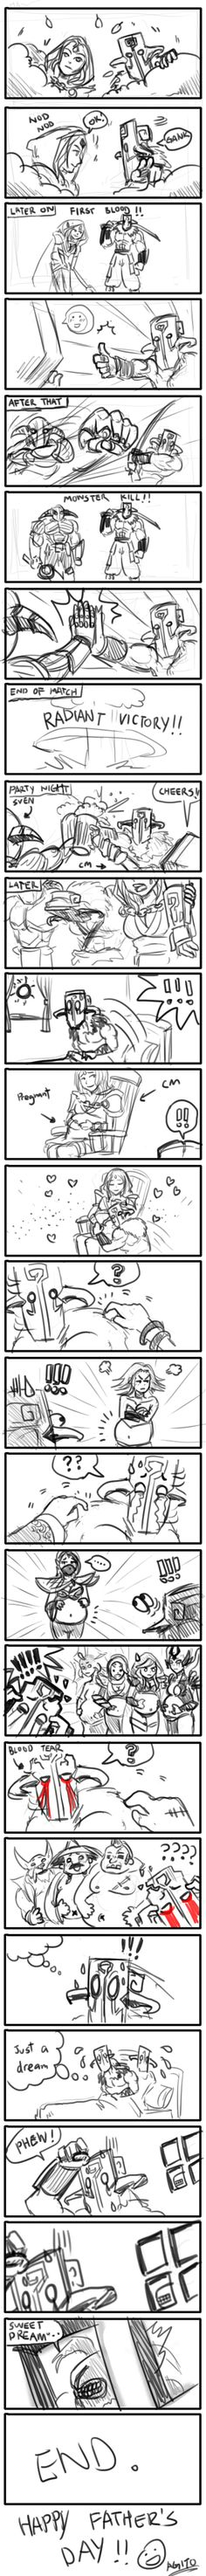 Happy Father's Day by on DeviantArt Dota 2 Meme, Fairy Tail Amv, Happy Fathers Day, Daddy, Fan Art, Deviantart, Bane, Memes, Funny